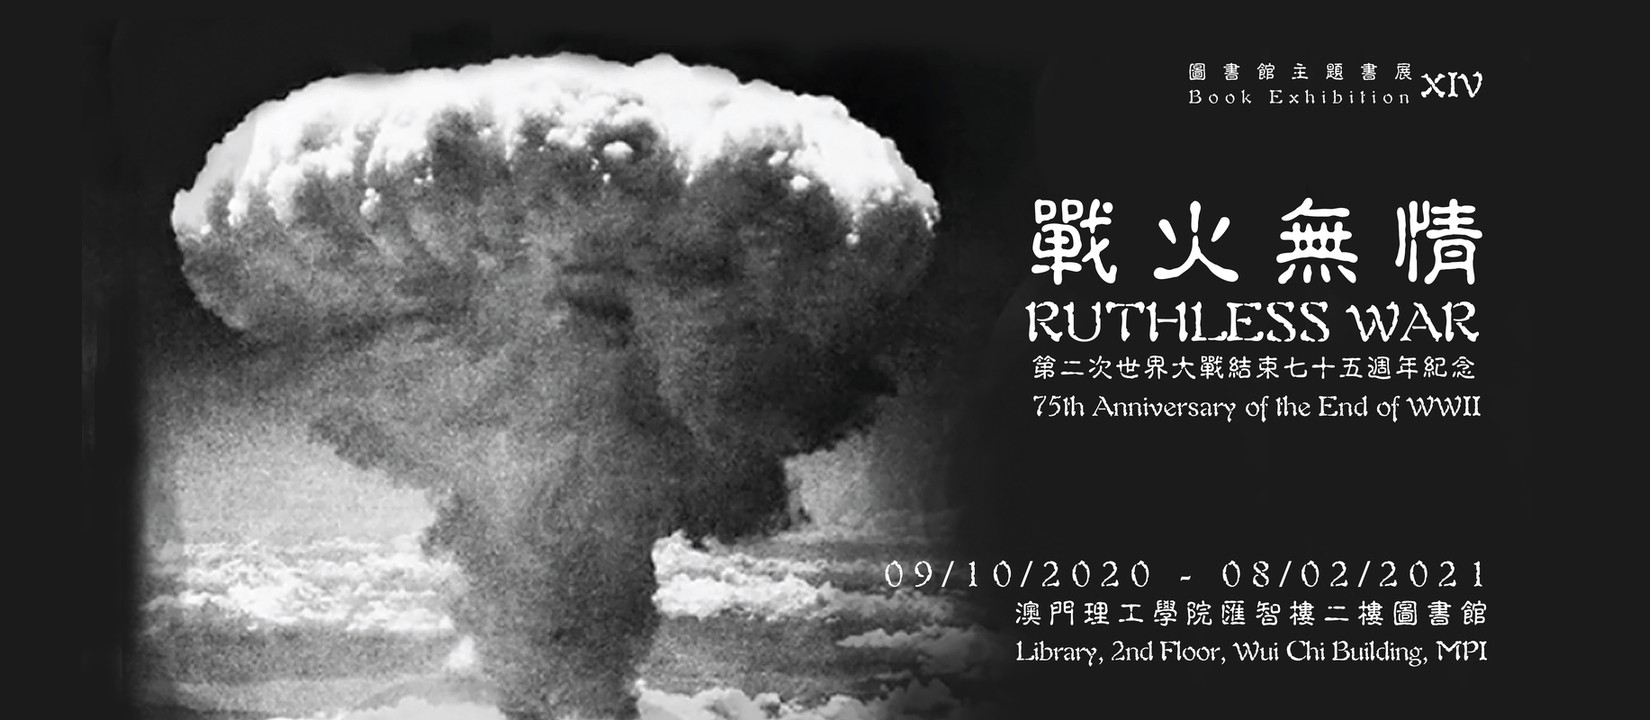 BOOK EXHIBITION 14 - Ruthless War: 75th Anniversary of the End of WWII